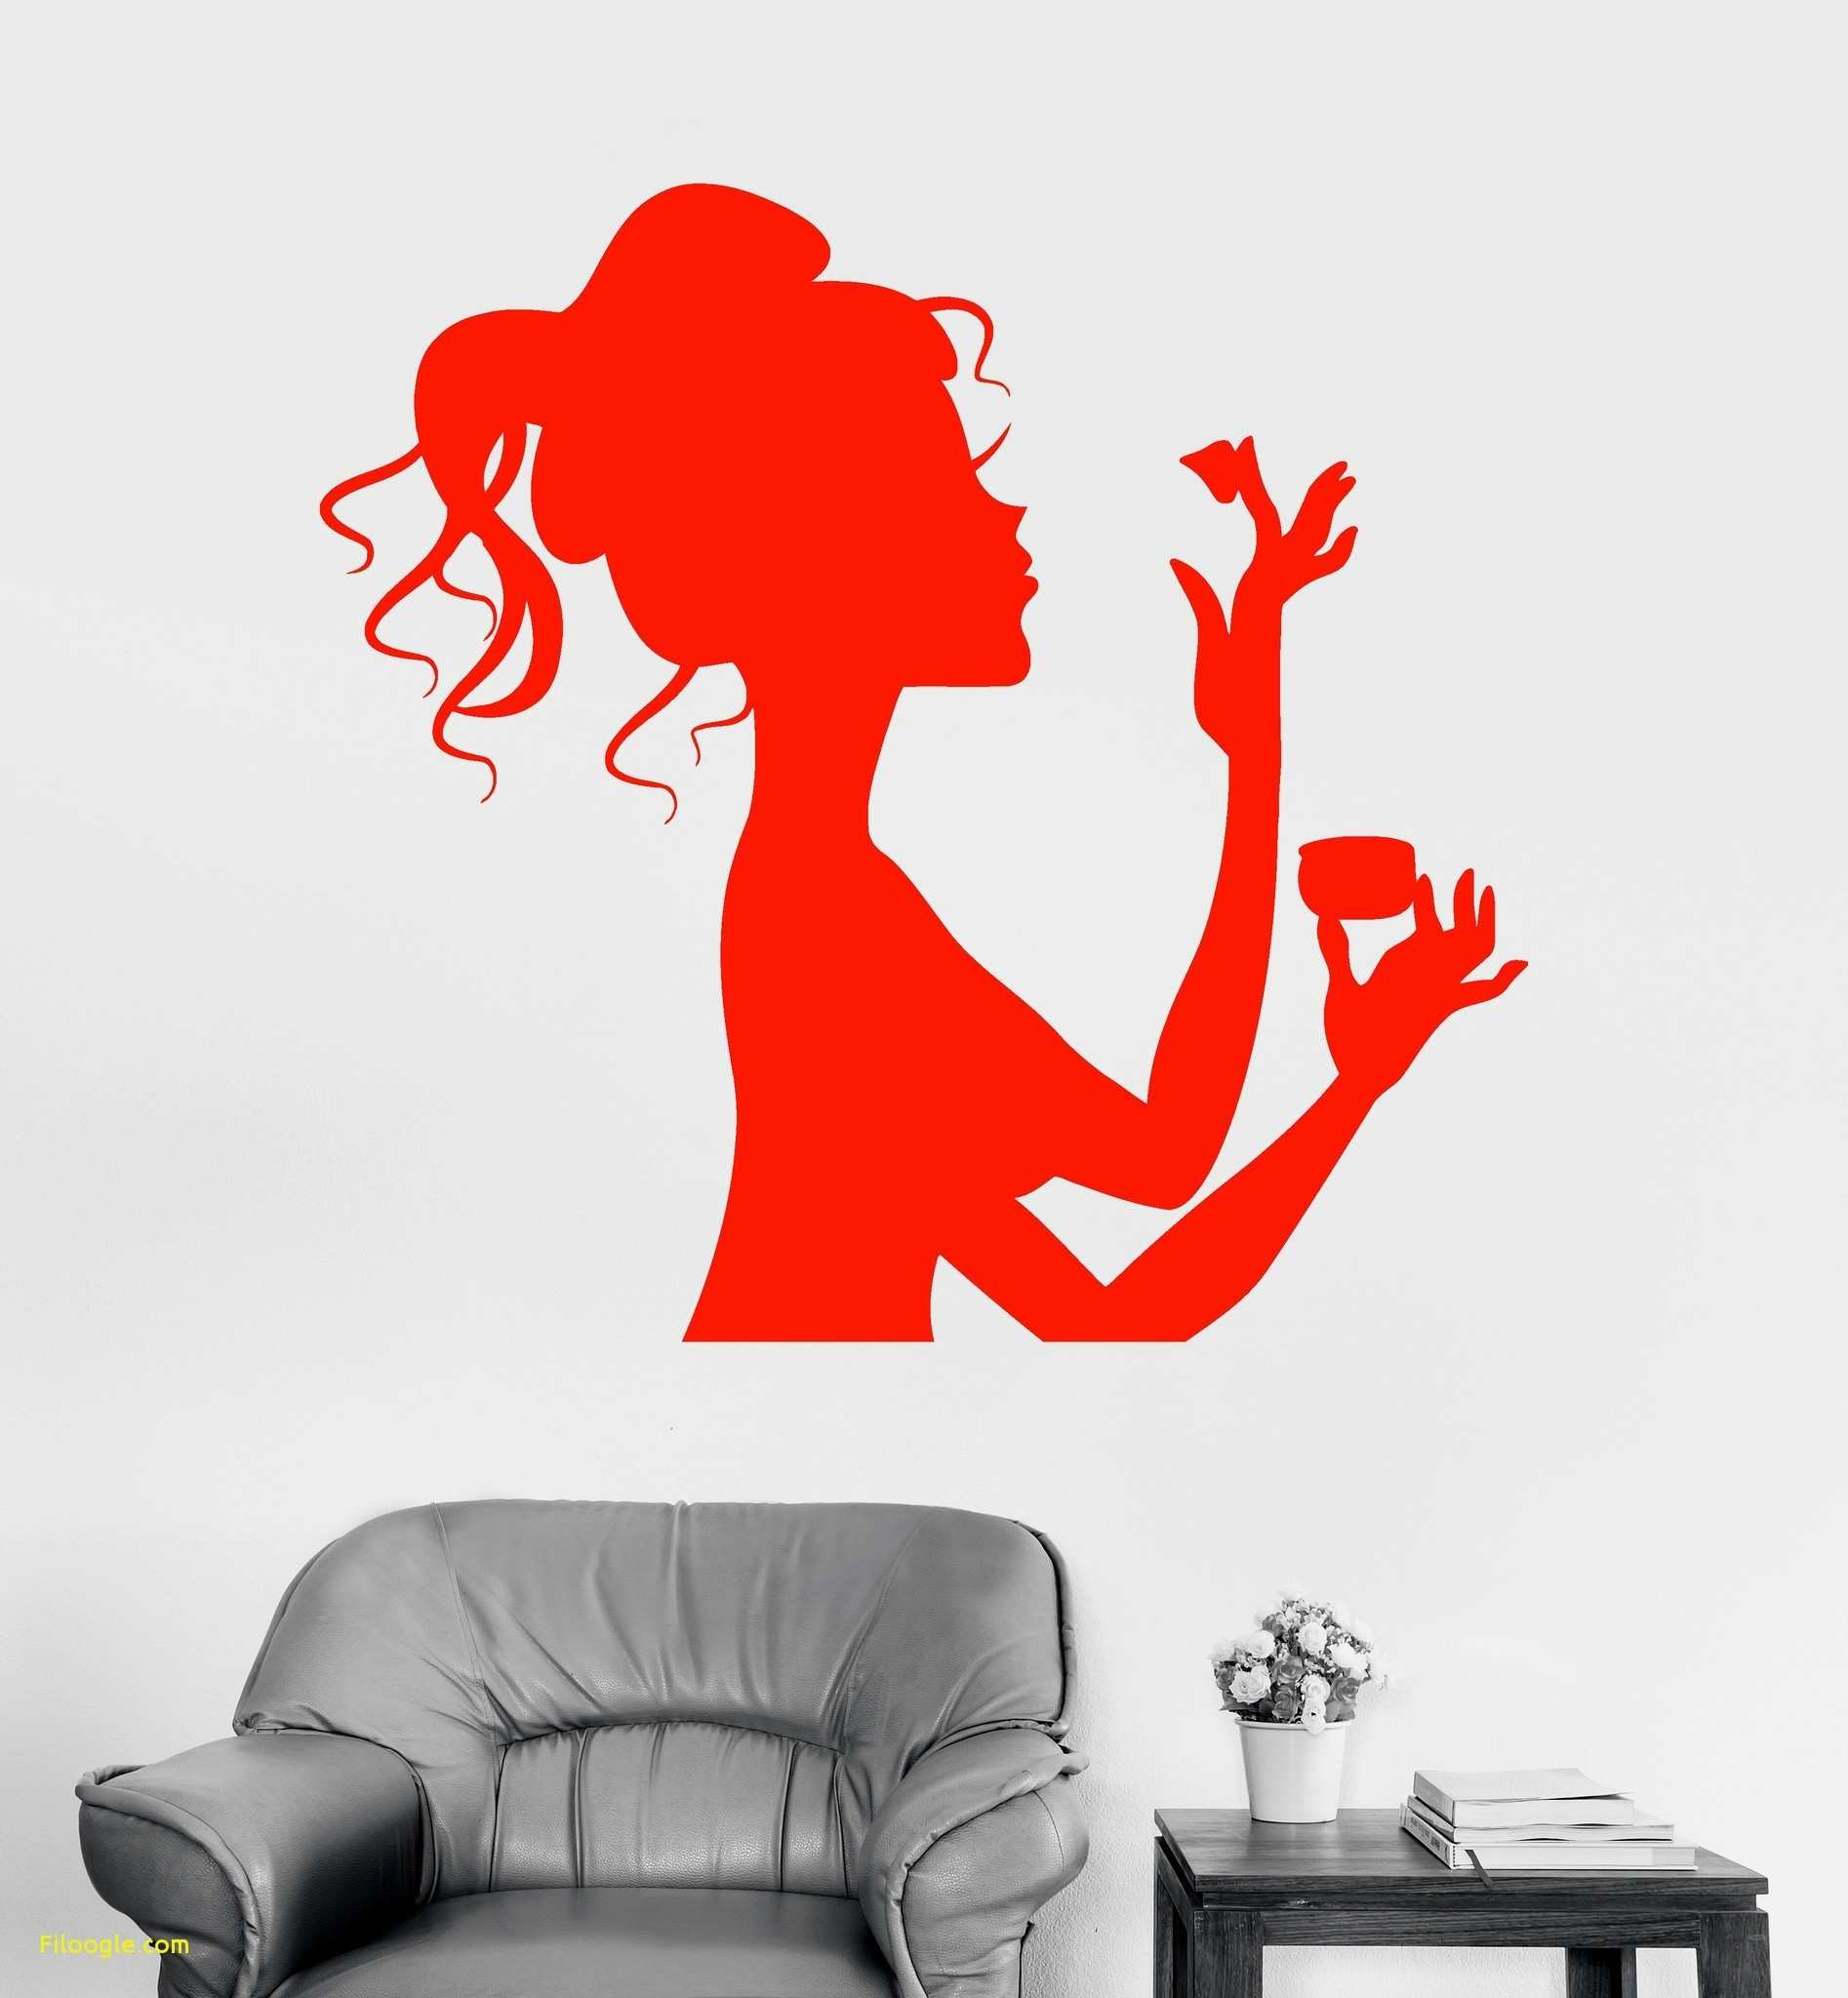 Home Decor Vintage Awesome Wall Decals for Bedroom Unique 1 Kirkland